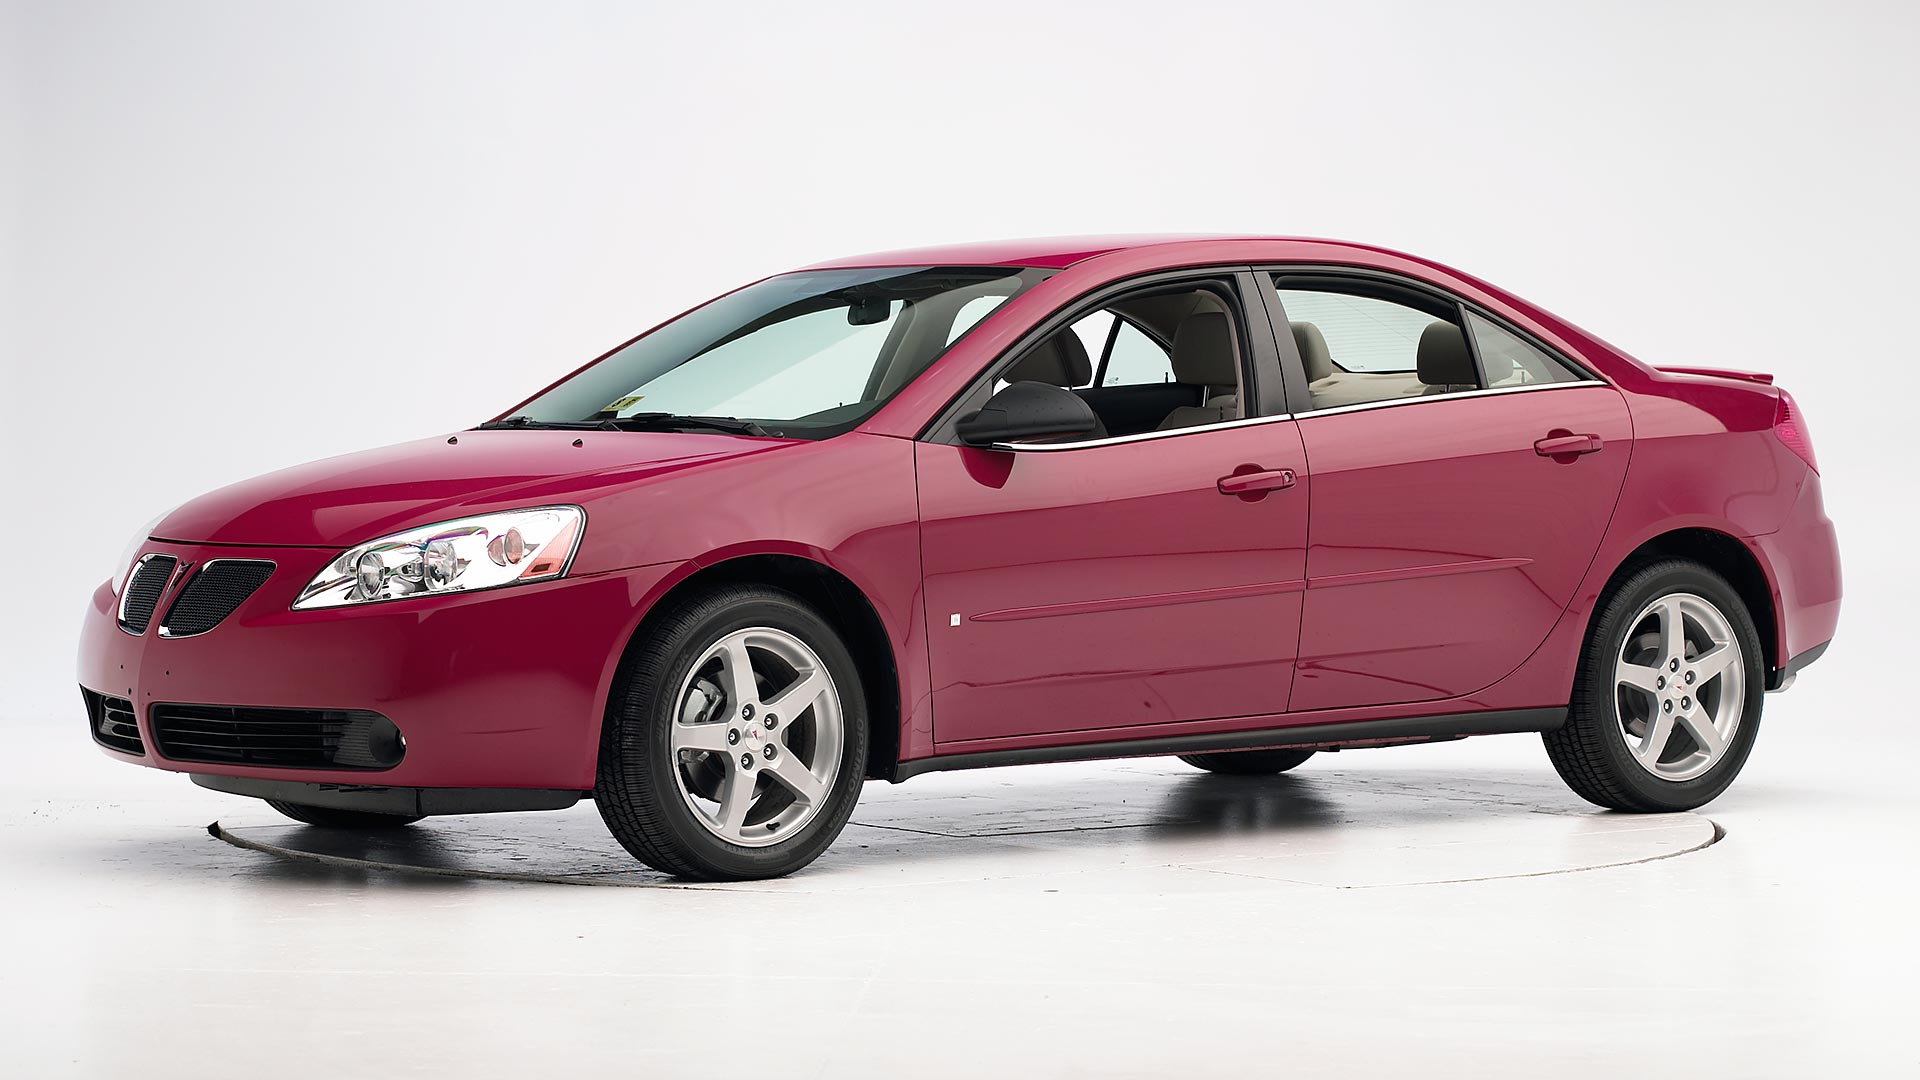 2010 Pontiac G6 4-door sedan